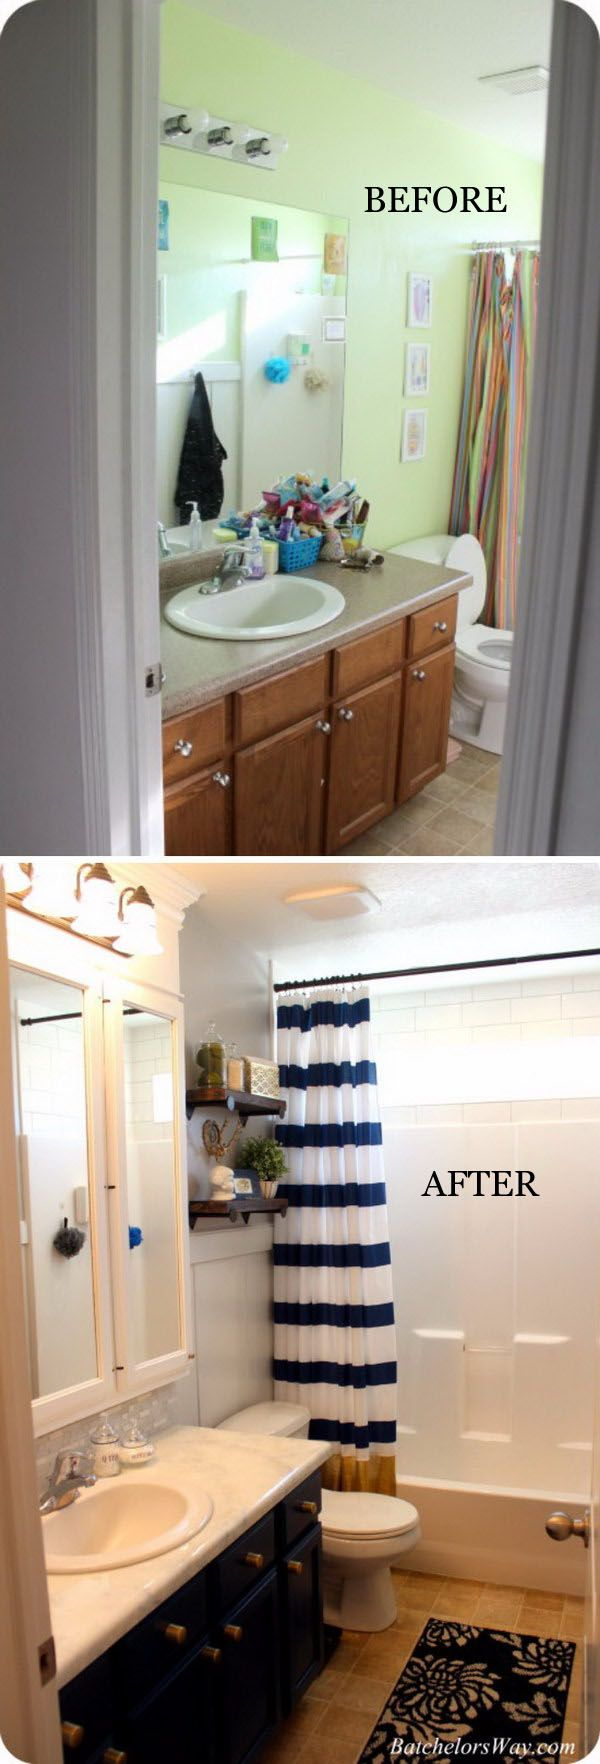 17 Best Ideas About Bathrooms On A Budget On Pinterest Bathroom Ideas Diy On A Budget